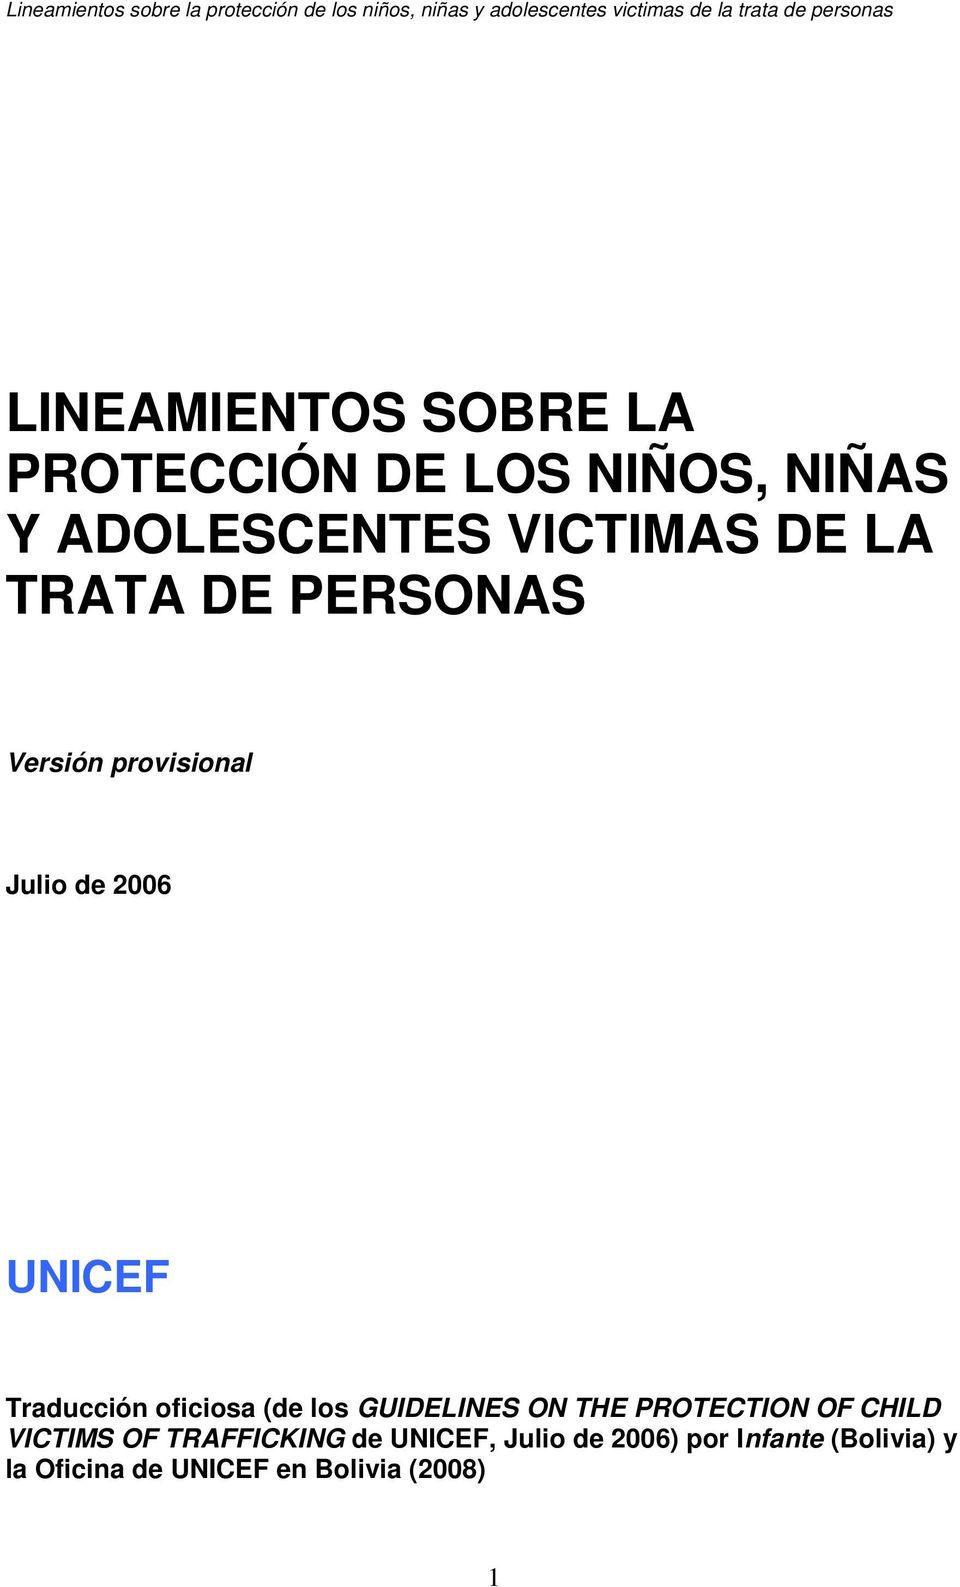 oficiosa (de los GUIDELINES ON THE PROTECTION OF CHILD VICTIMS OF TRAFFICKING de